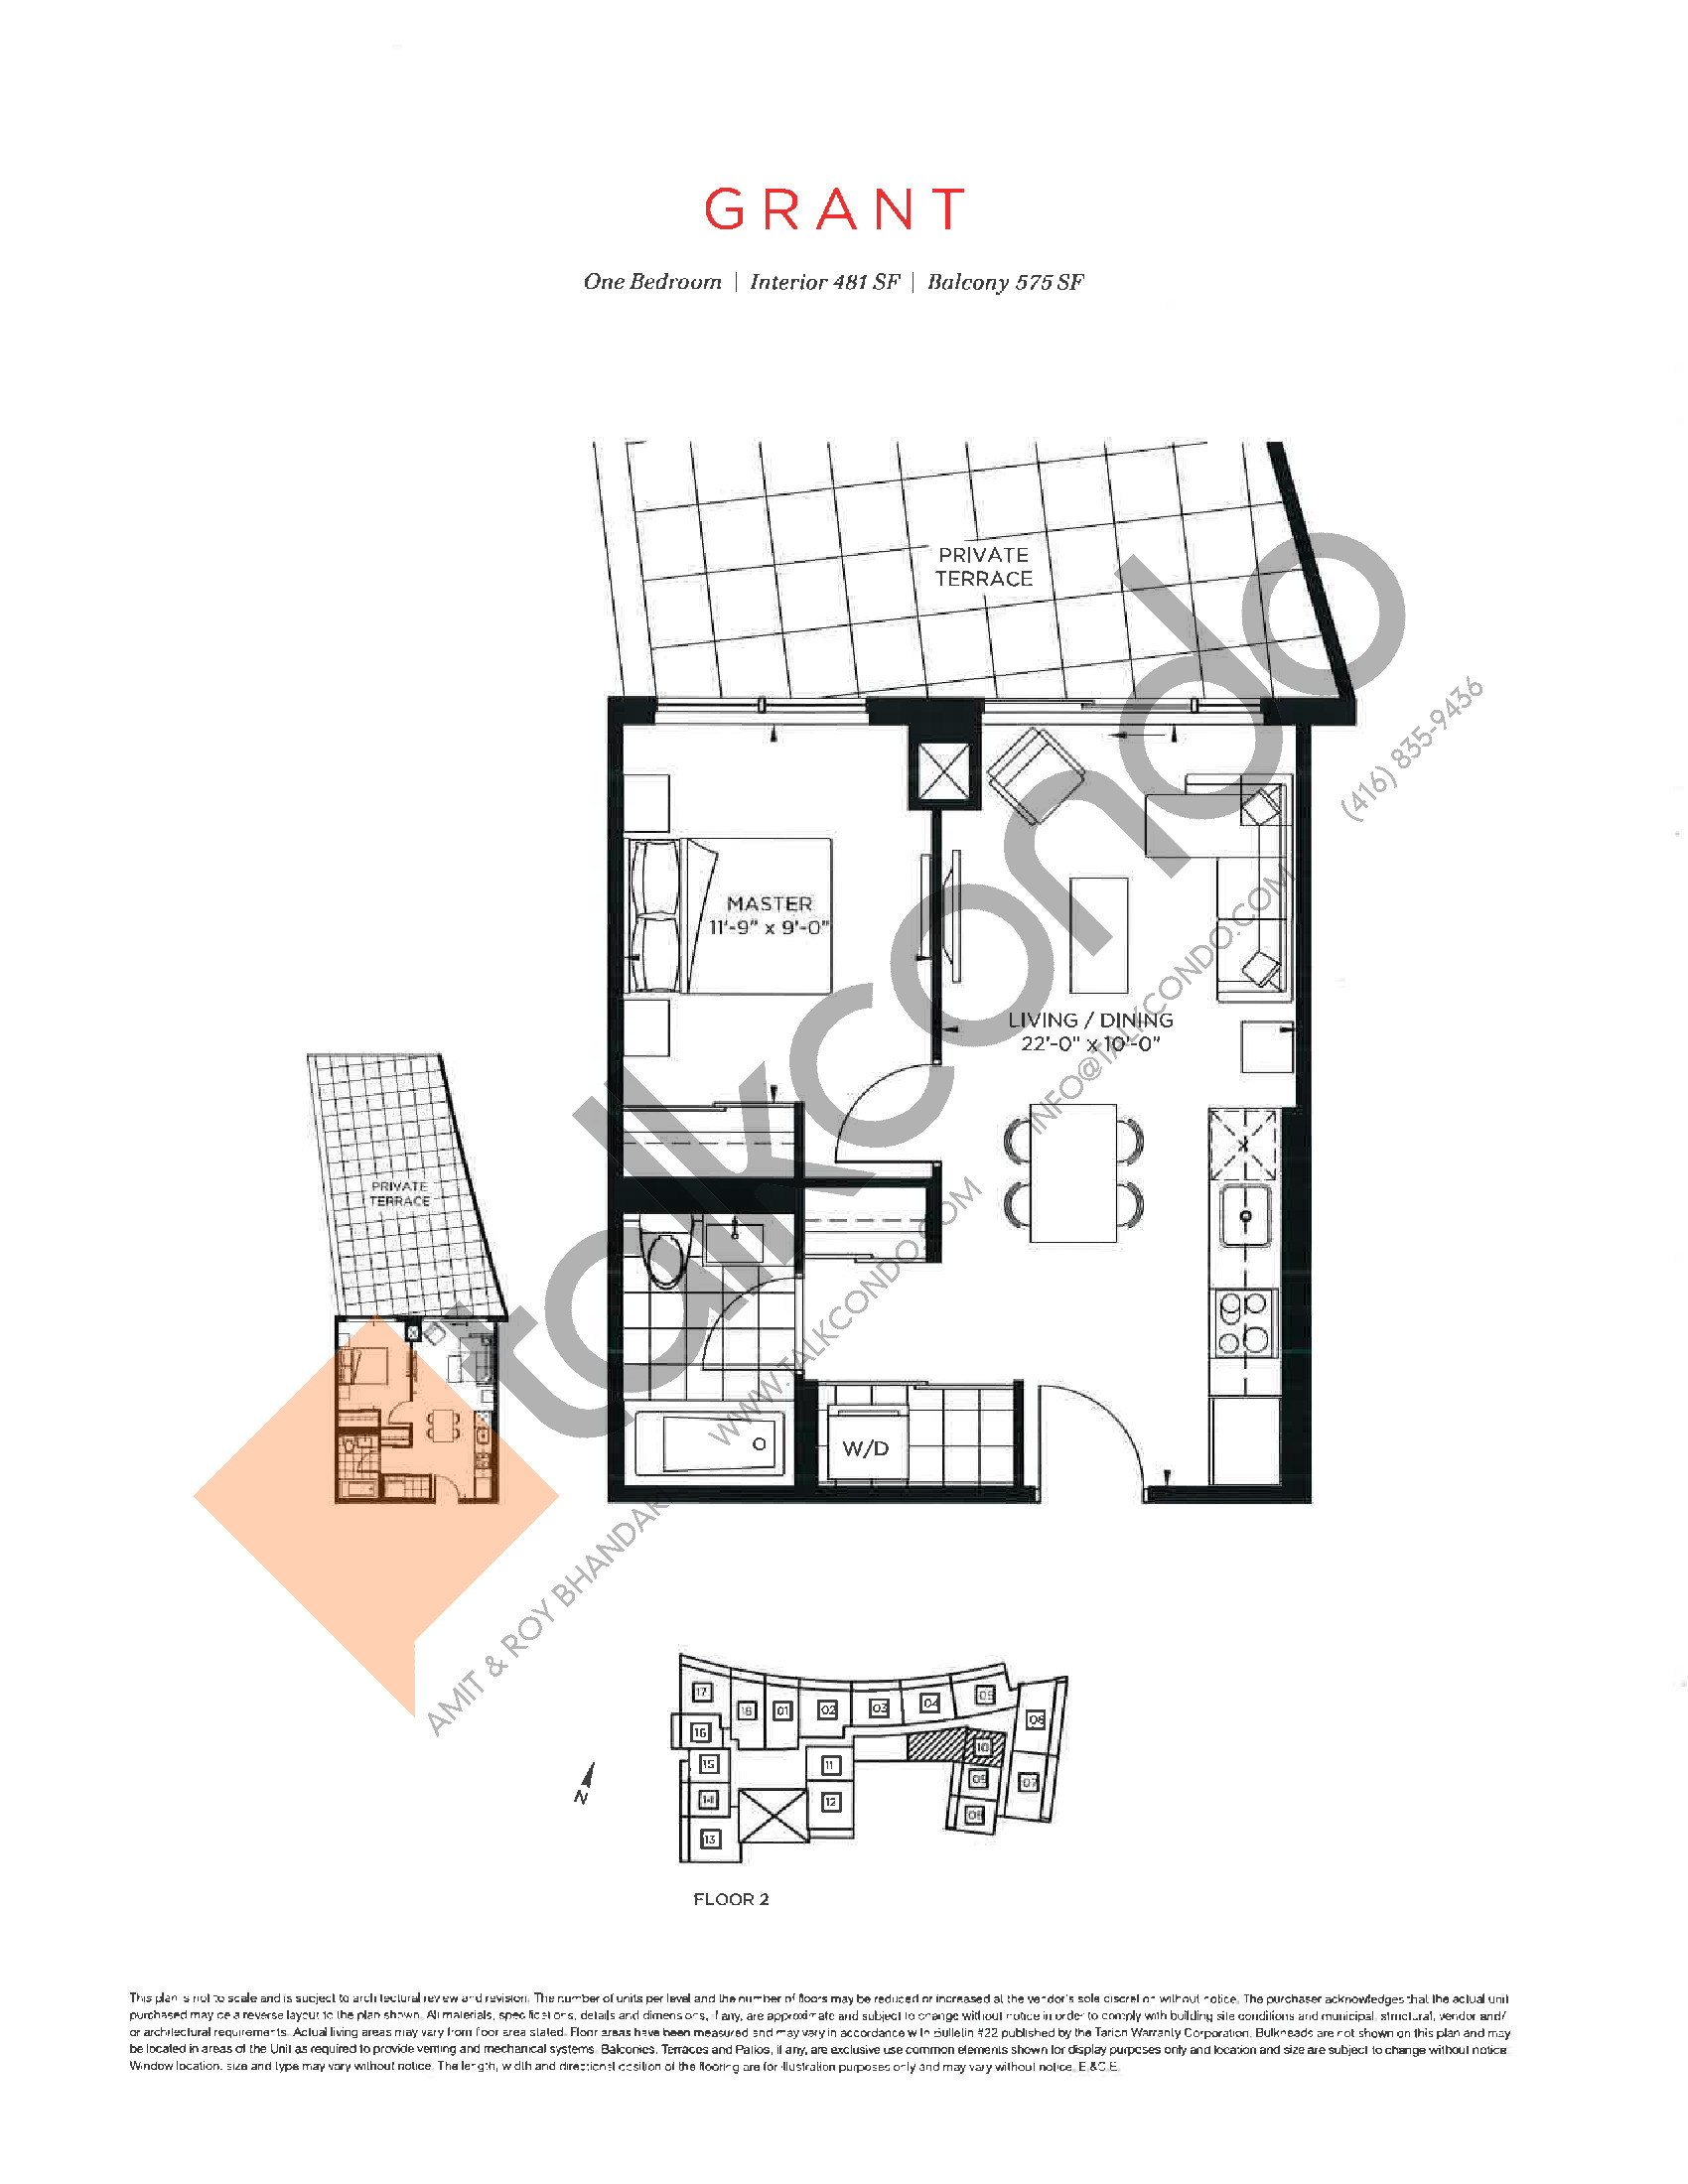 Grant Floor Plan at The Point at Emerald City Condos - 481 sq.ft